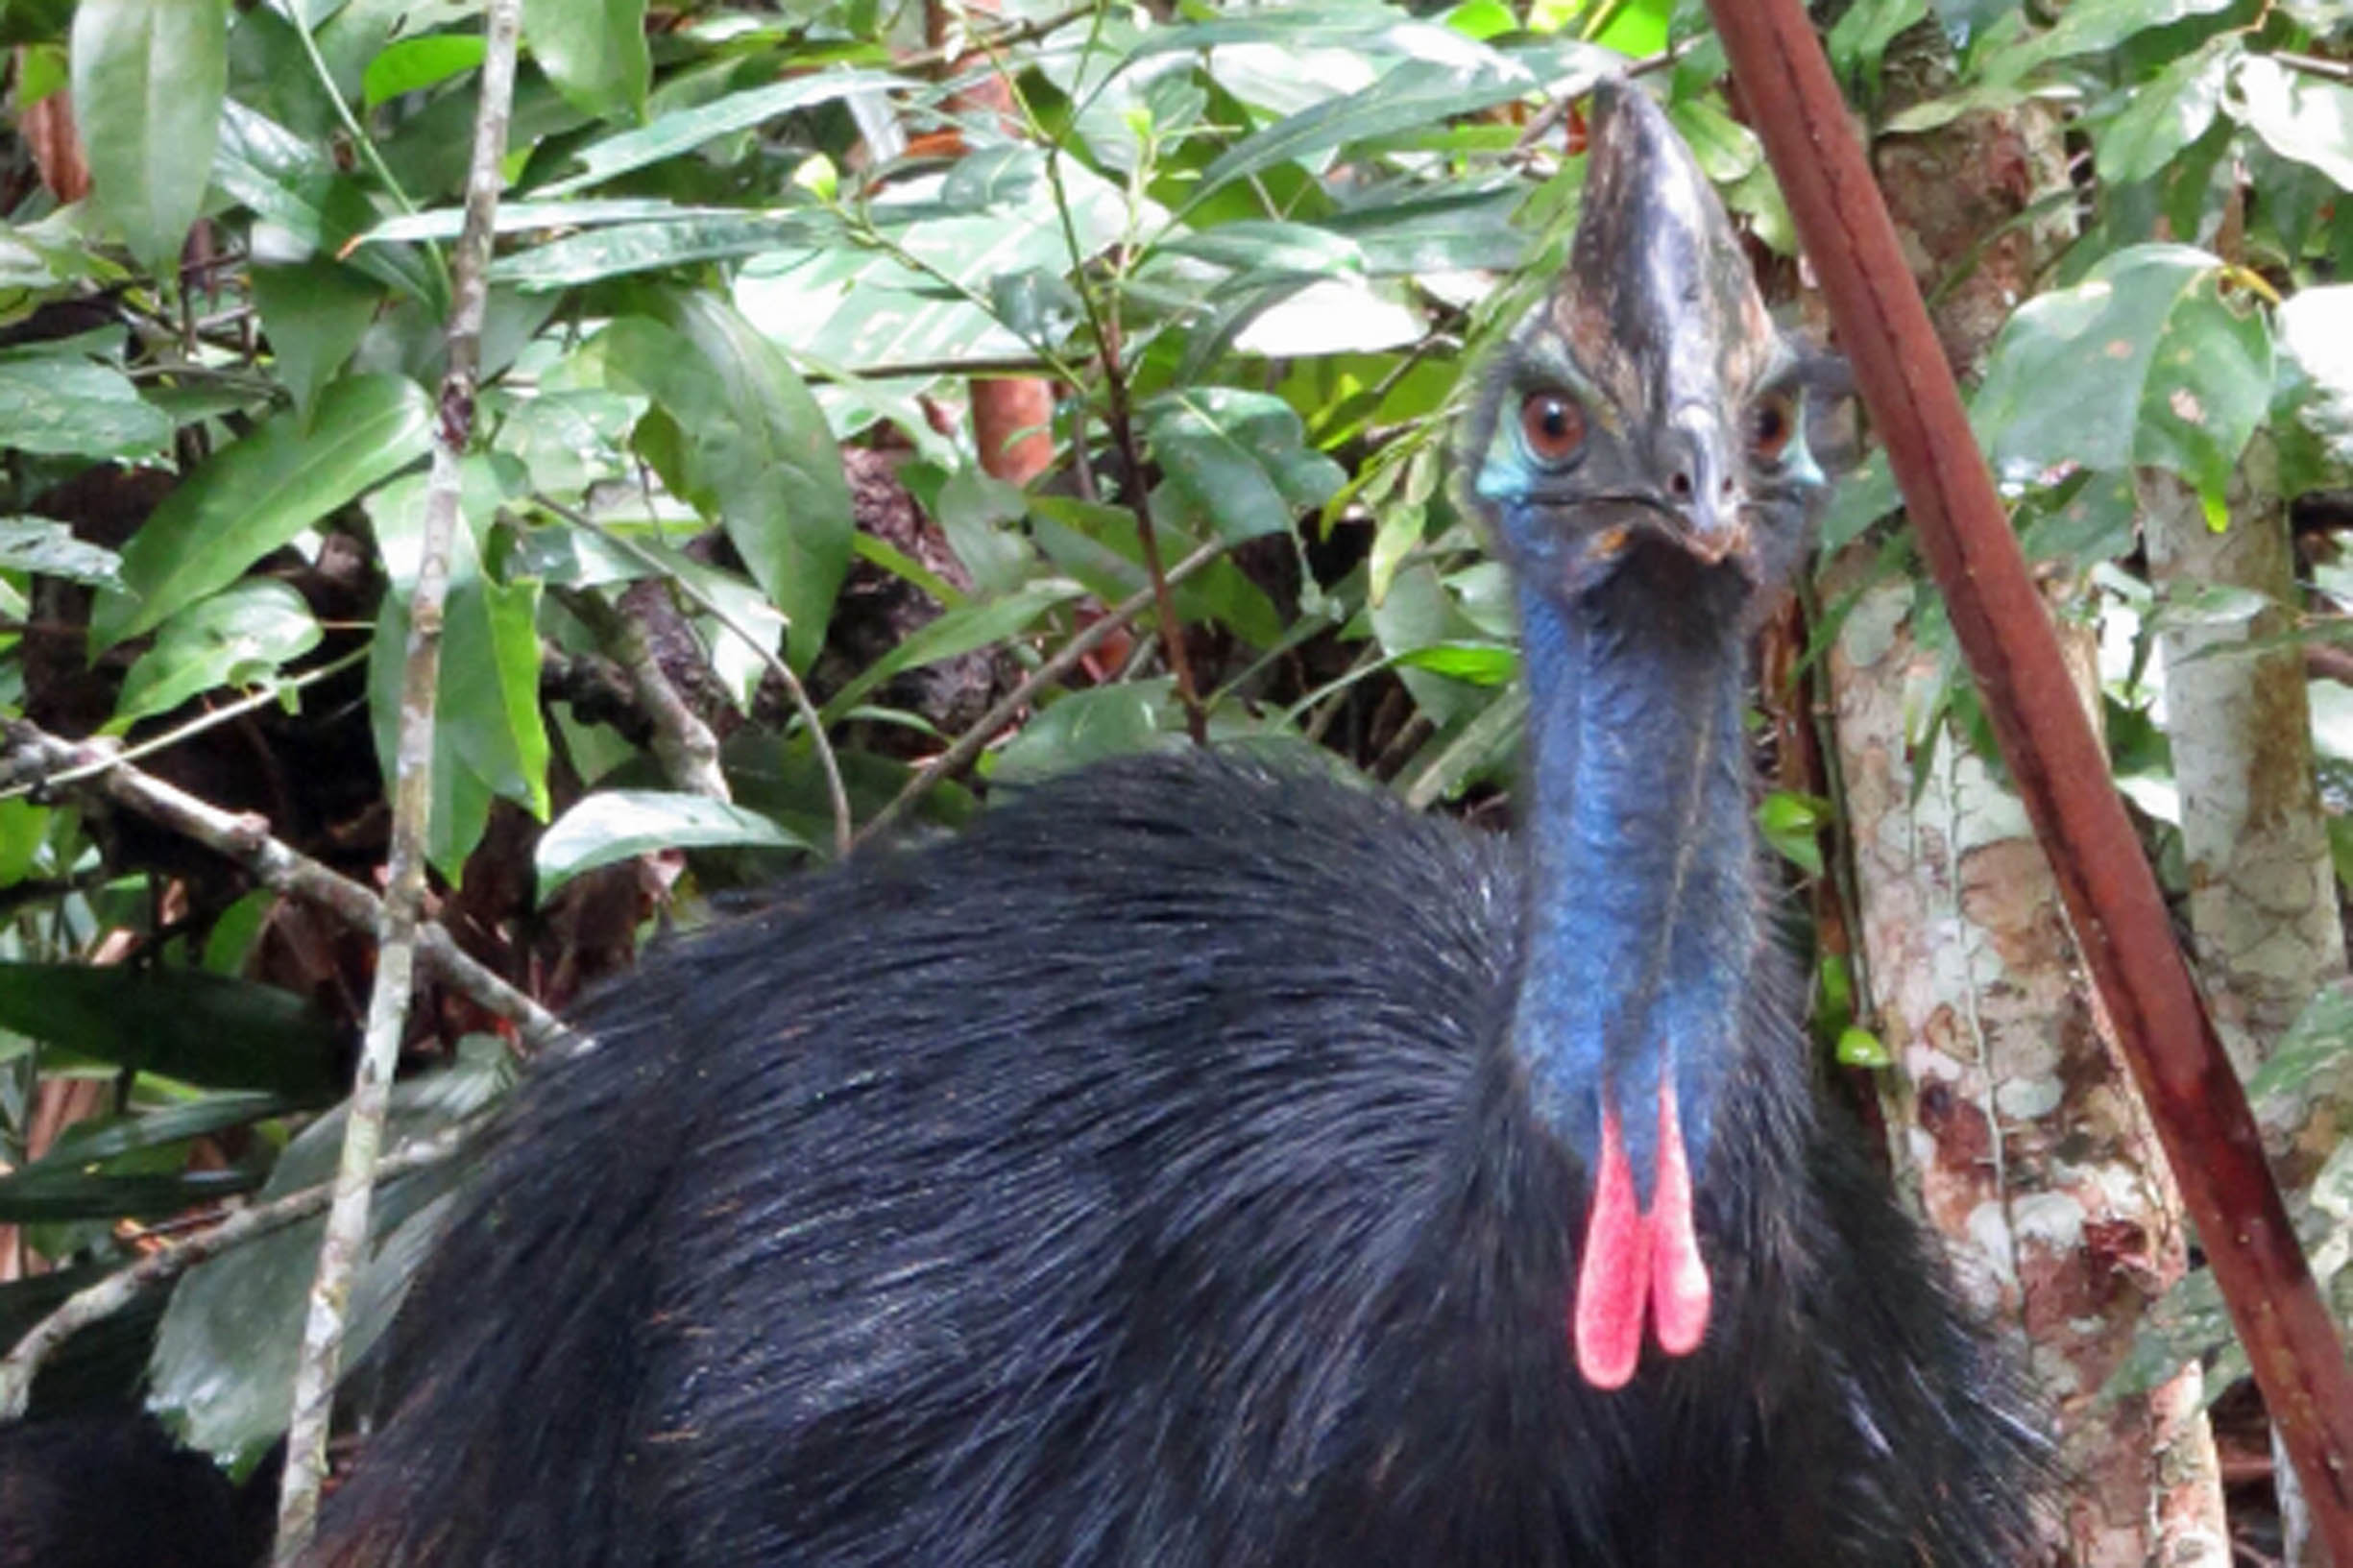 WELCOME BACK CASSOWARY DAD, and hi to CHICK AND BUNDA